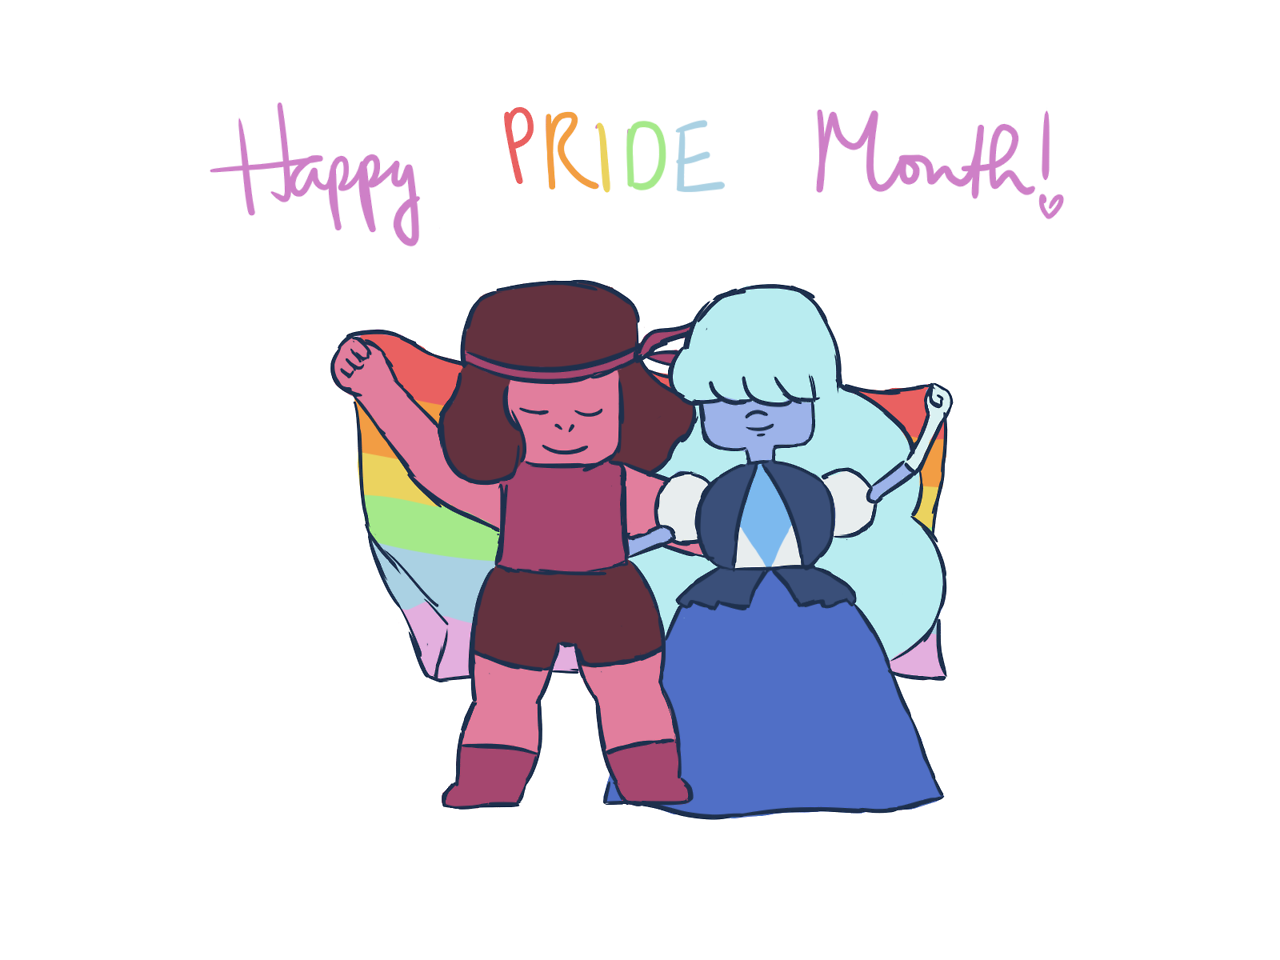 drew these lovelies for pride month.